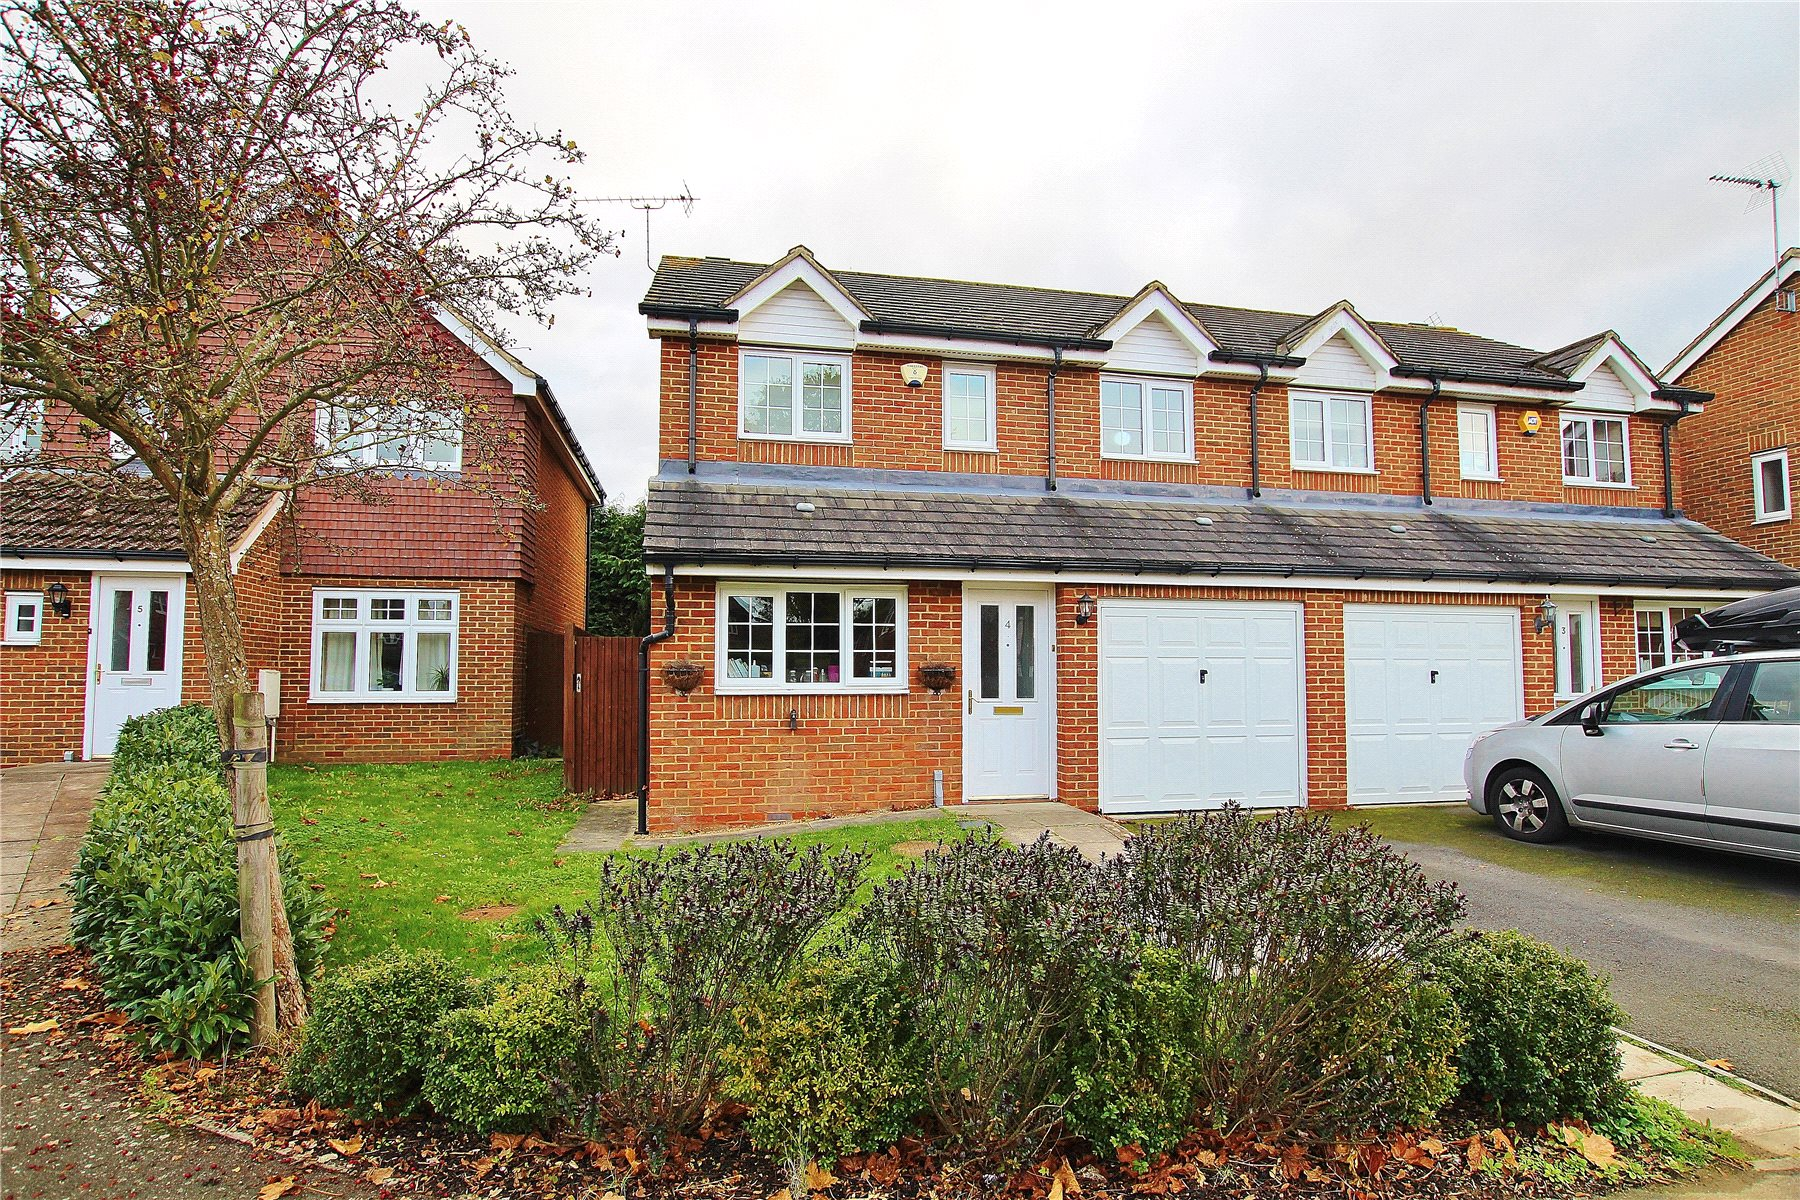 3 Bedrooms Semi Detached House for sale in Orchard Mews, Knaphill, Woking, Surrey, GU21